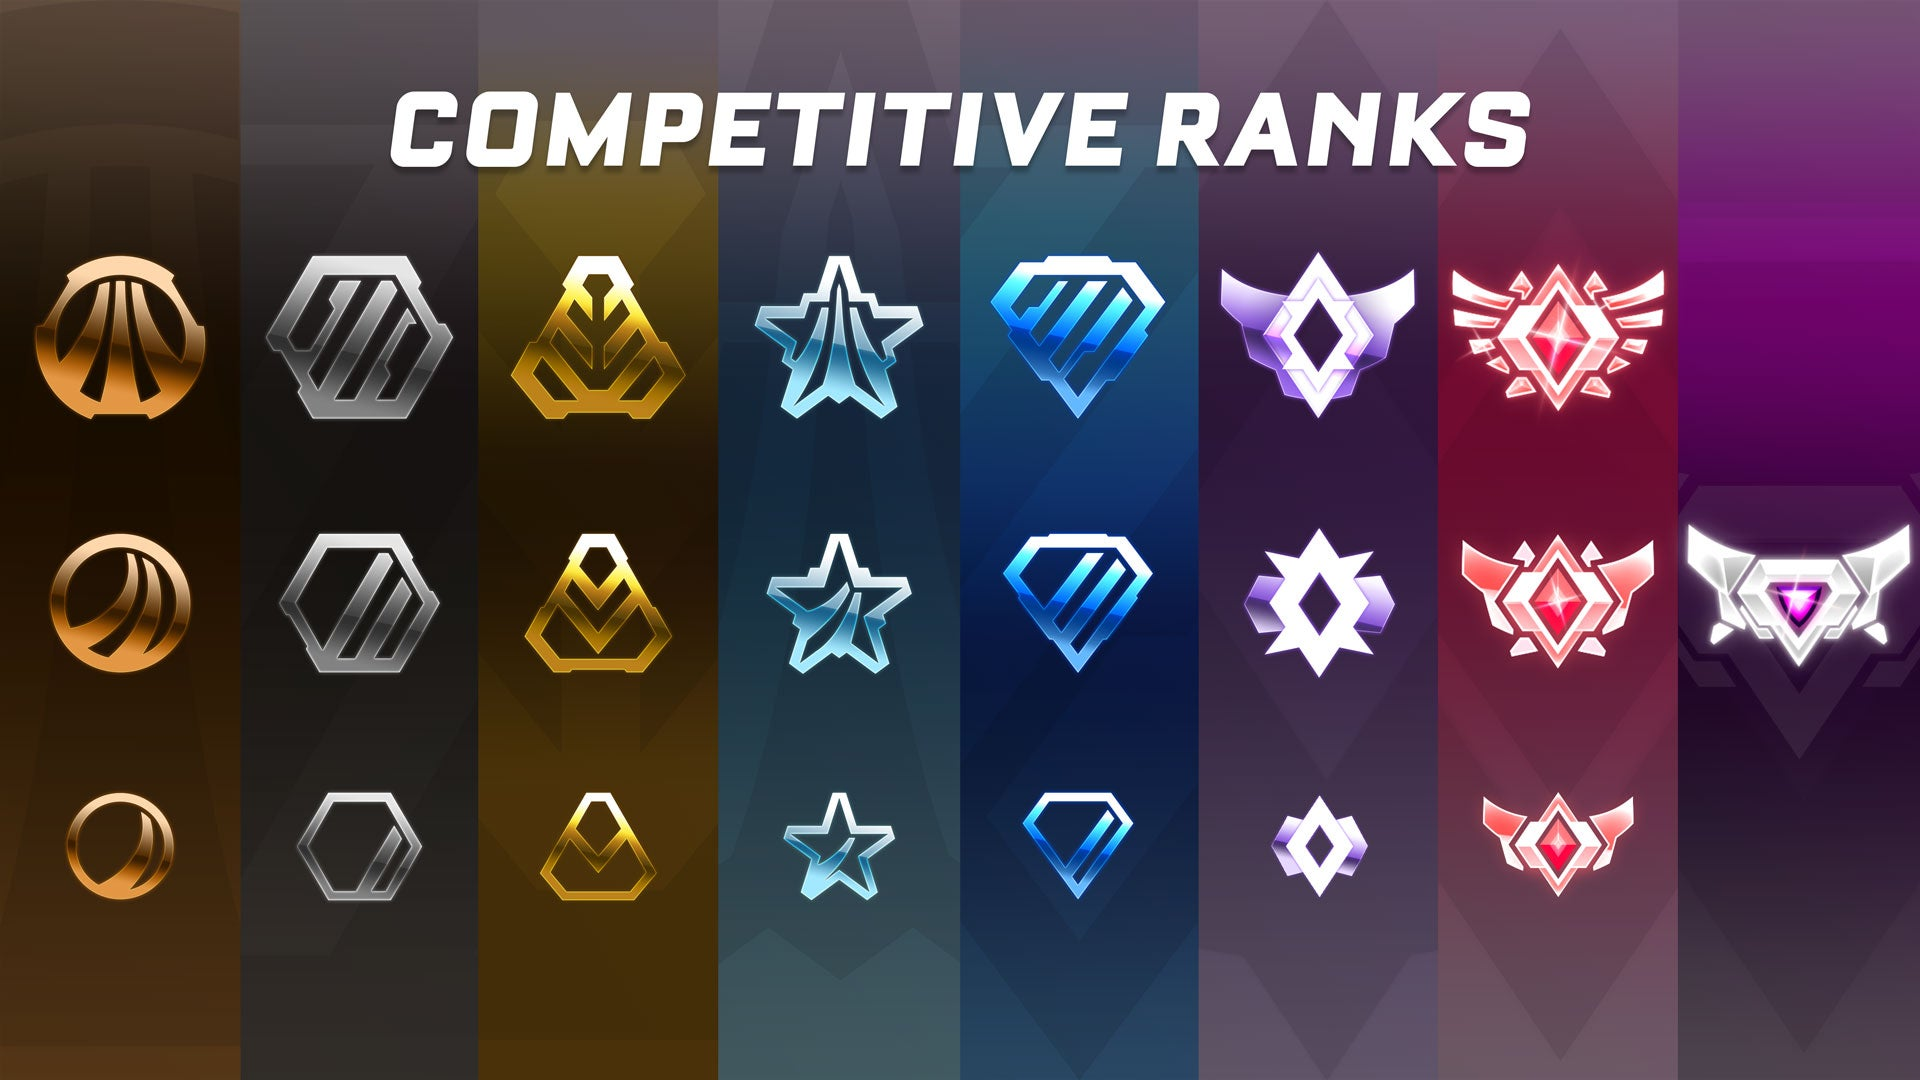 New Competitive Ranks